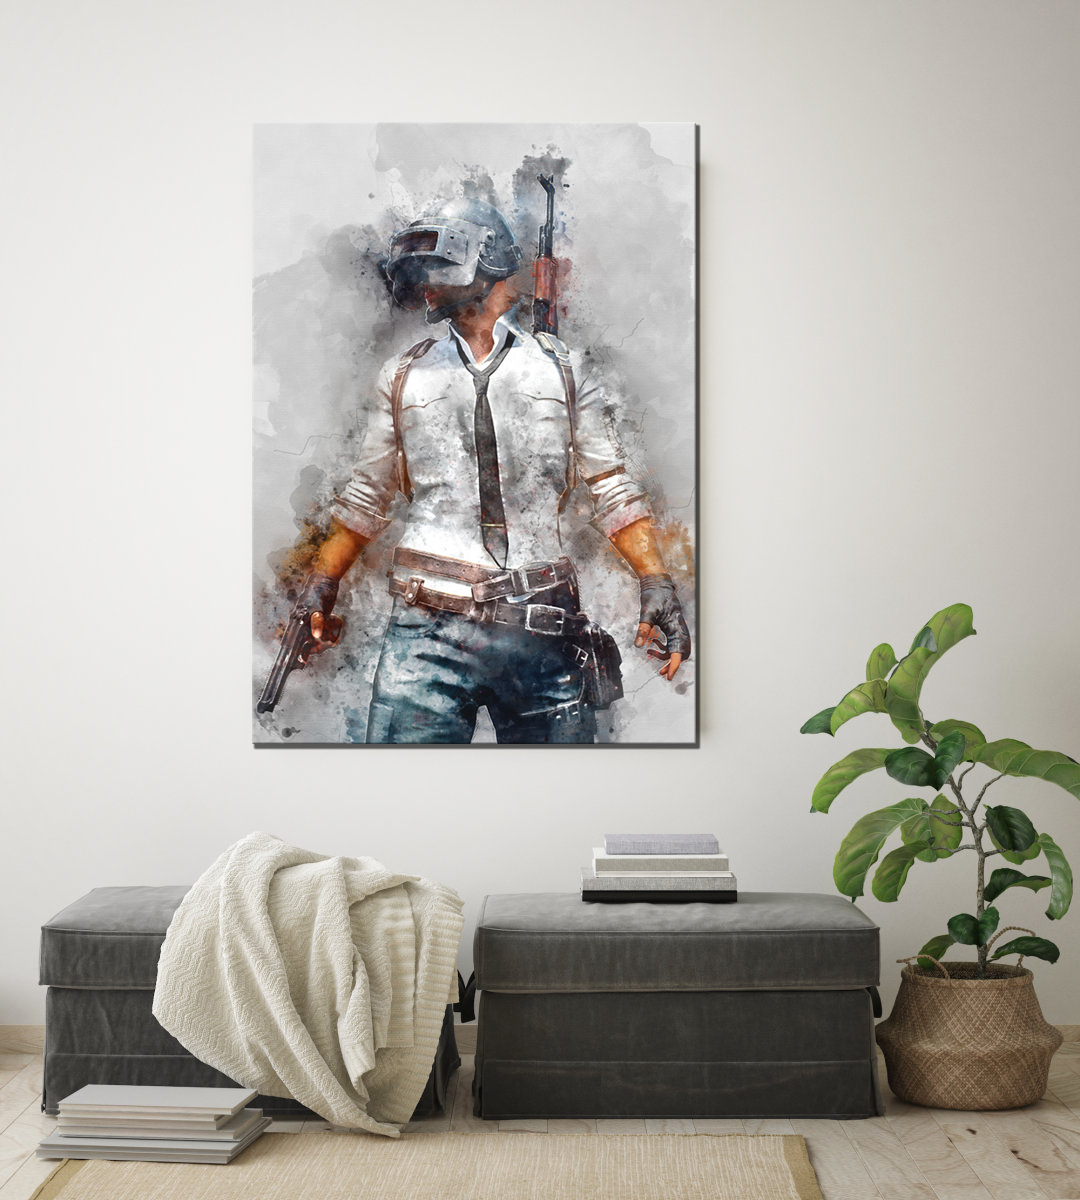 1 Piece PUBG PLAYERUNKNOWNS BATTLEGROUNDS Game Poster Artwork Canvas Painting Wall Art for Home Decor 4